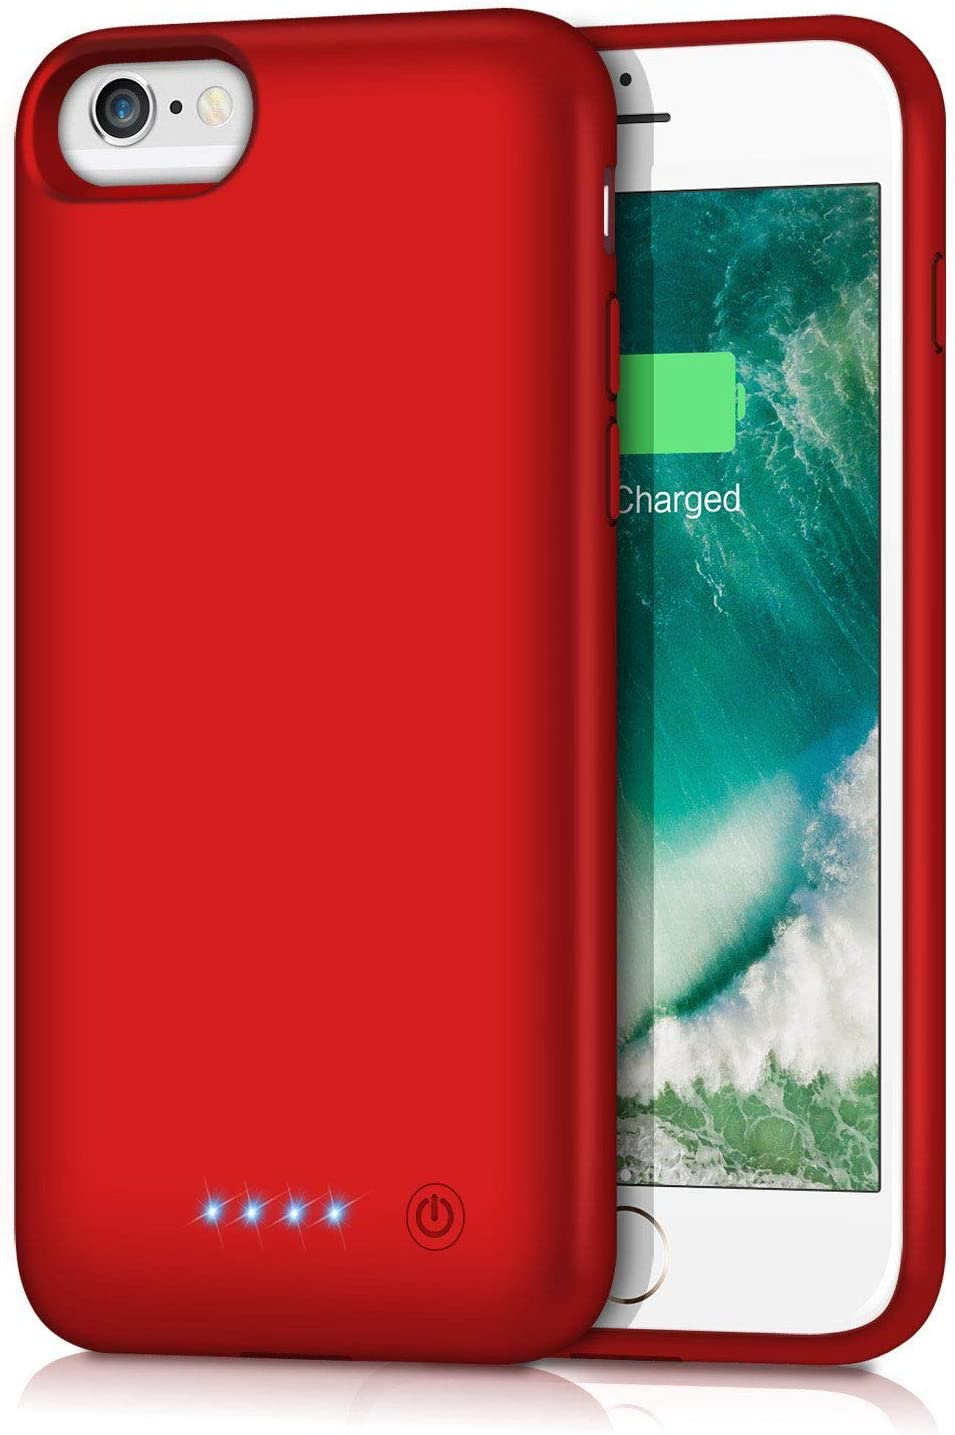 Gixvdcu Battery Case for iPhone 6/7/8/6S 6000mAh,Portable Charger Case Protective Battery Pack Charging Cover Case for iPhone 6/6s/7/8- Red (4.7inch)